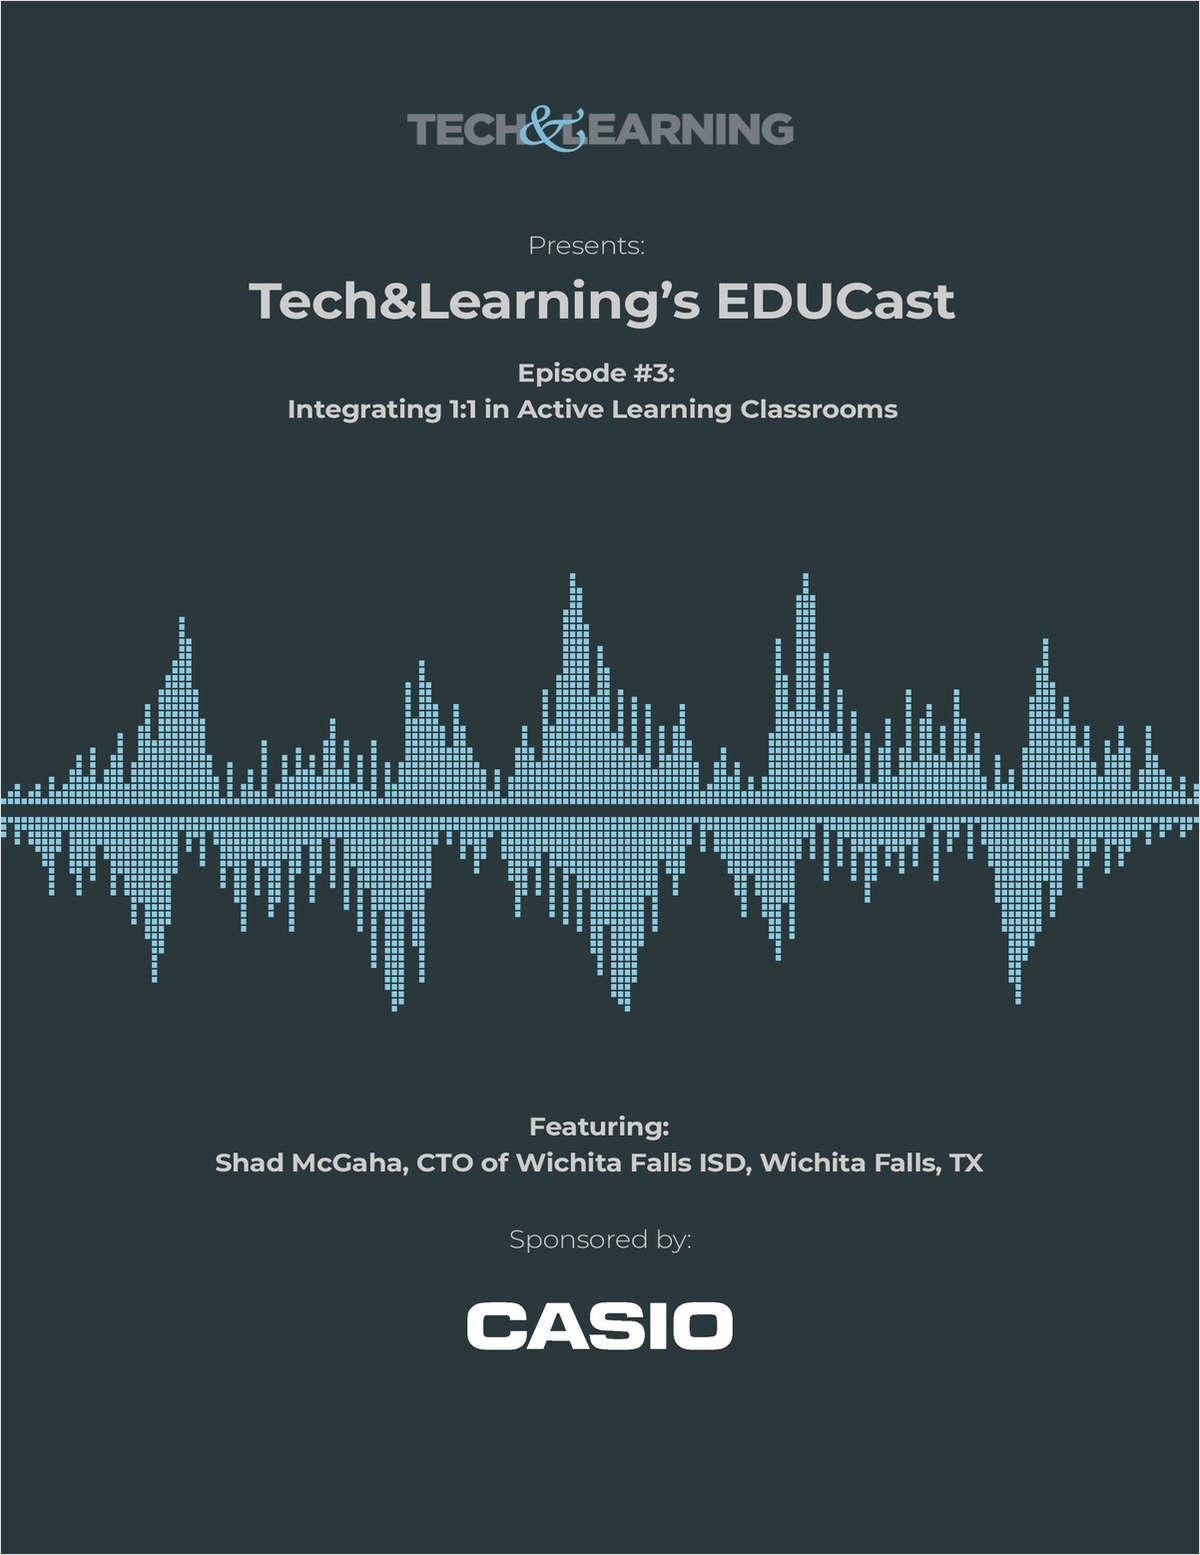 Integrating 1:1 in Active Learning Classrooms